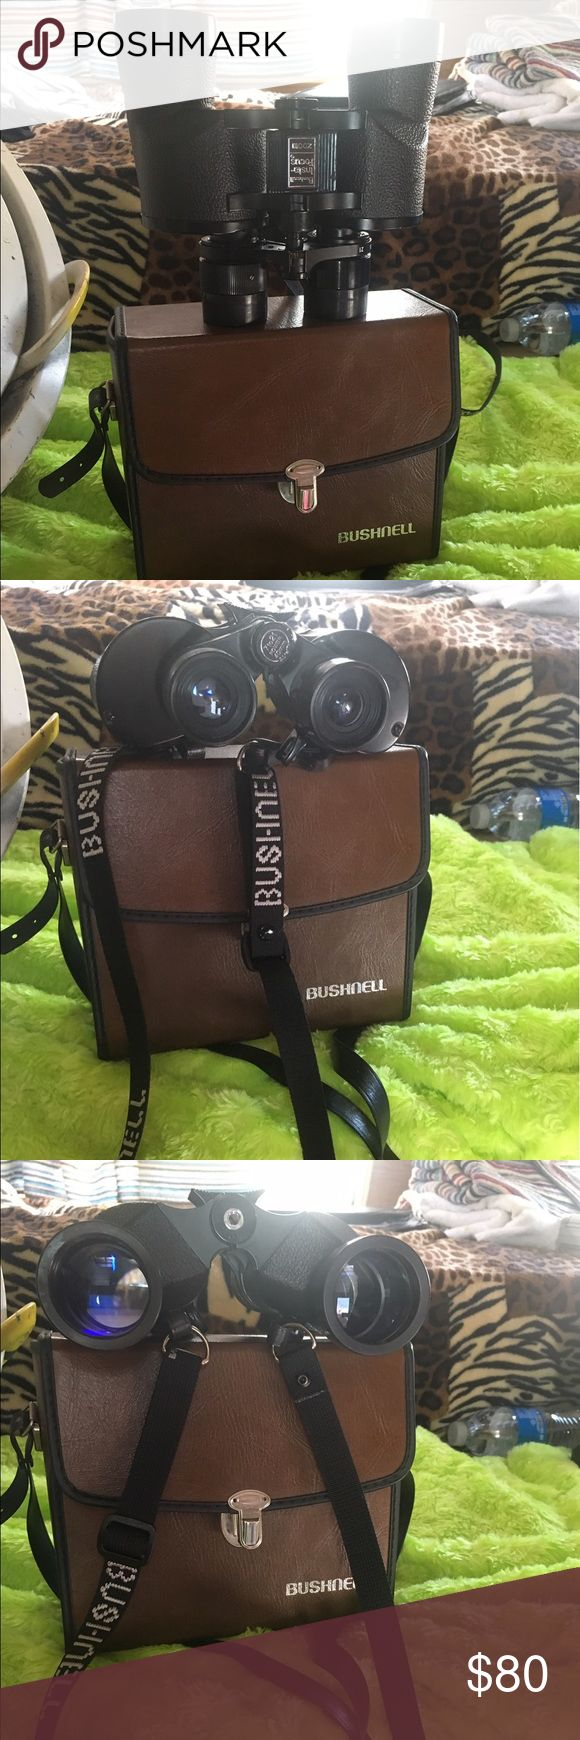 Bushnell binoculars with pouch Vintage Bushnell Insta-Focus Zoom Binoculars, 7-15 x 35.  300' @ 1000yds. Fully Coated.  With original case and in Excellent Condition.  Note no lens covers. bushnell Other